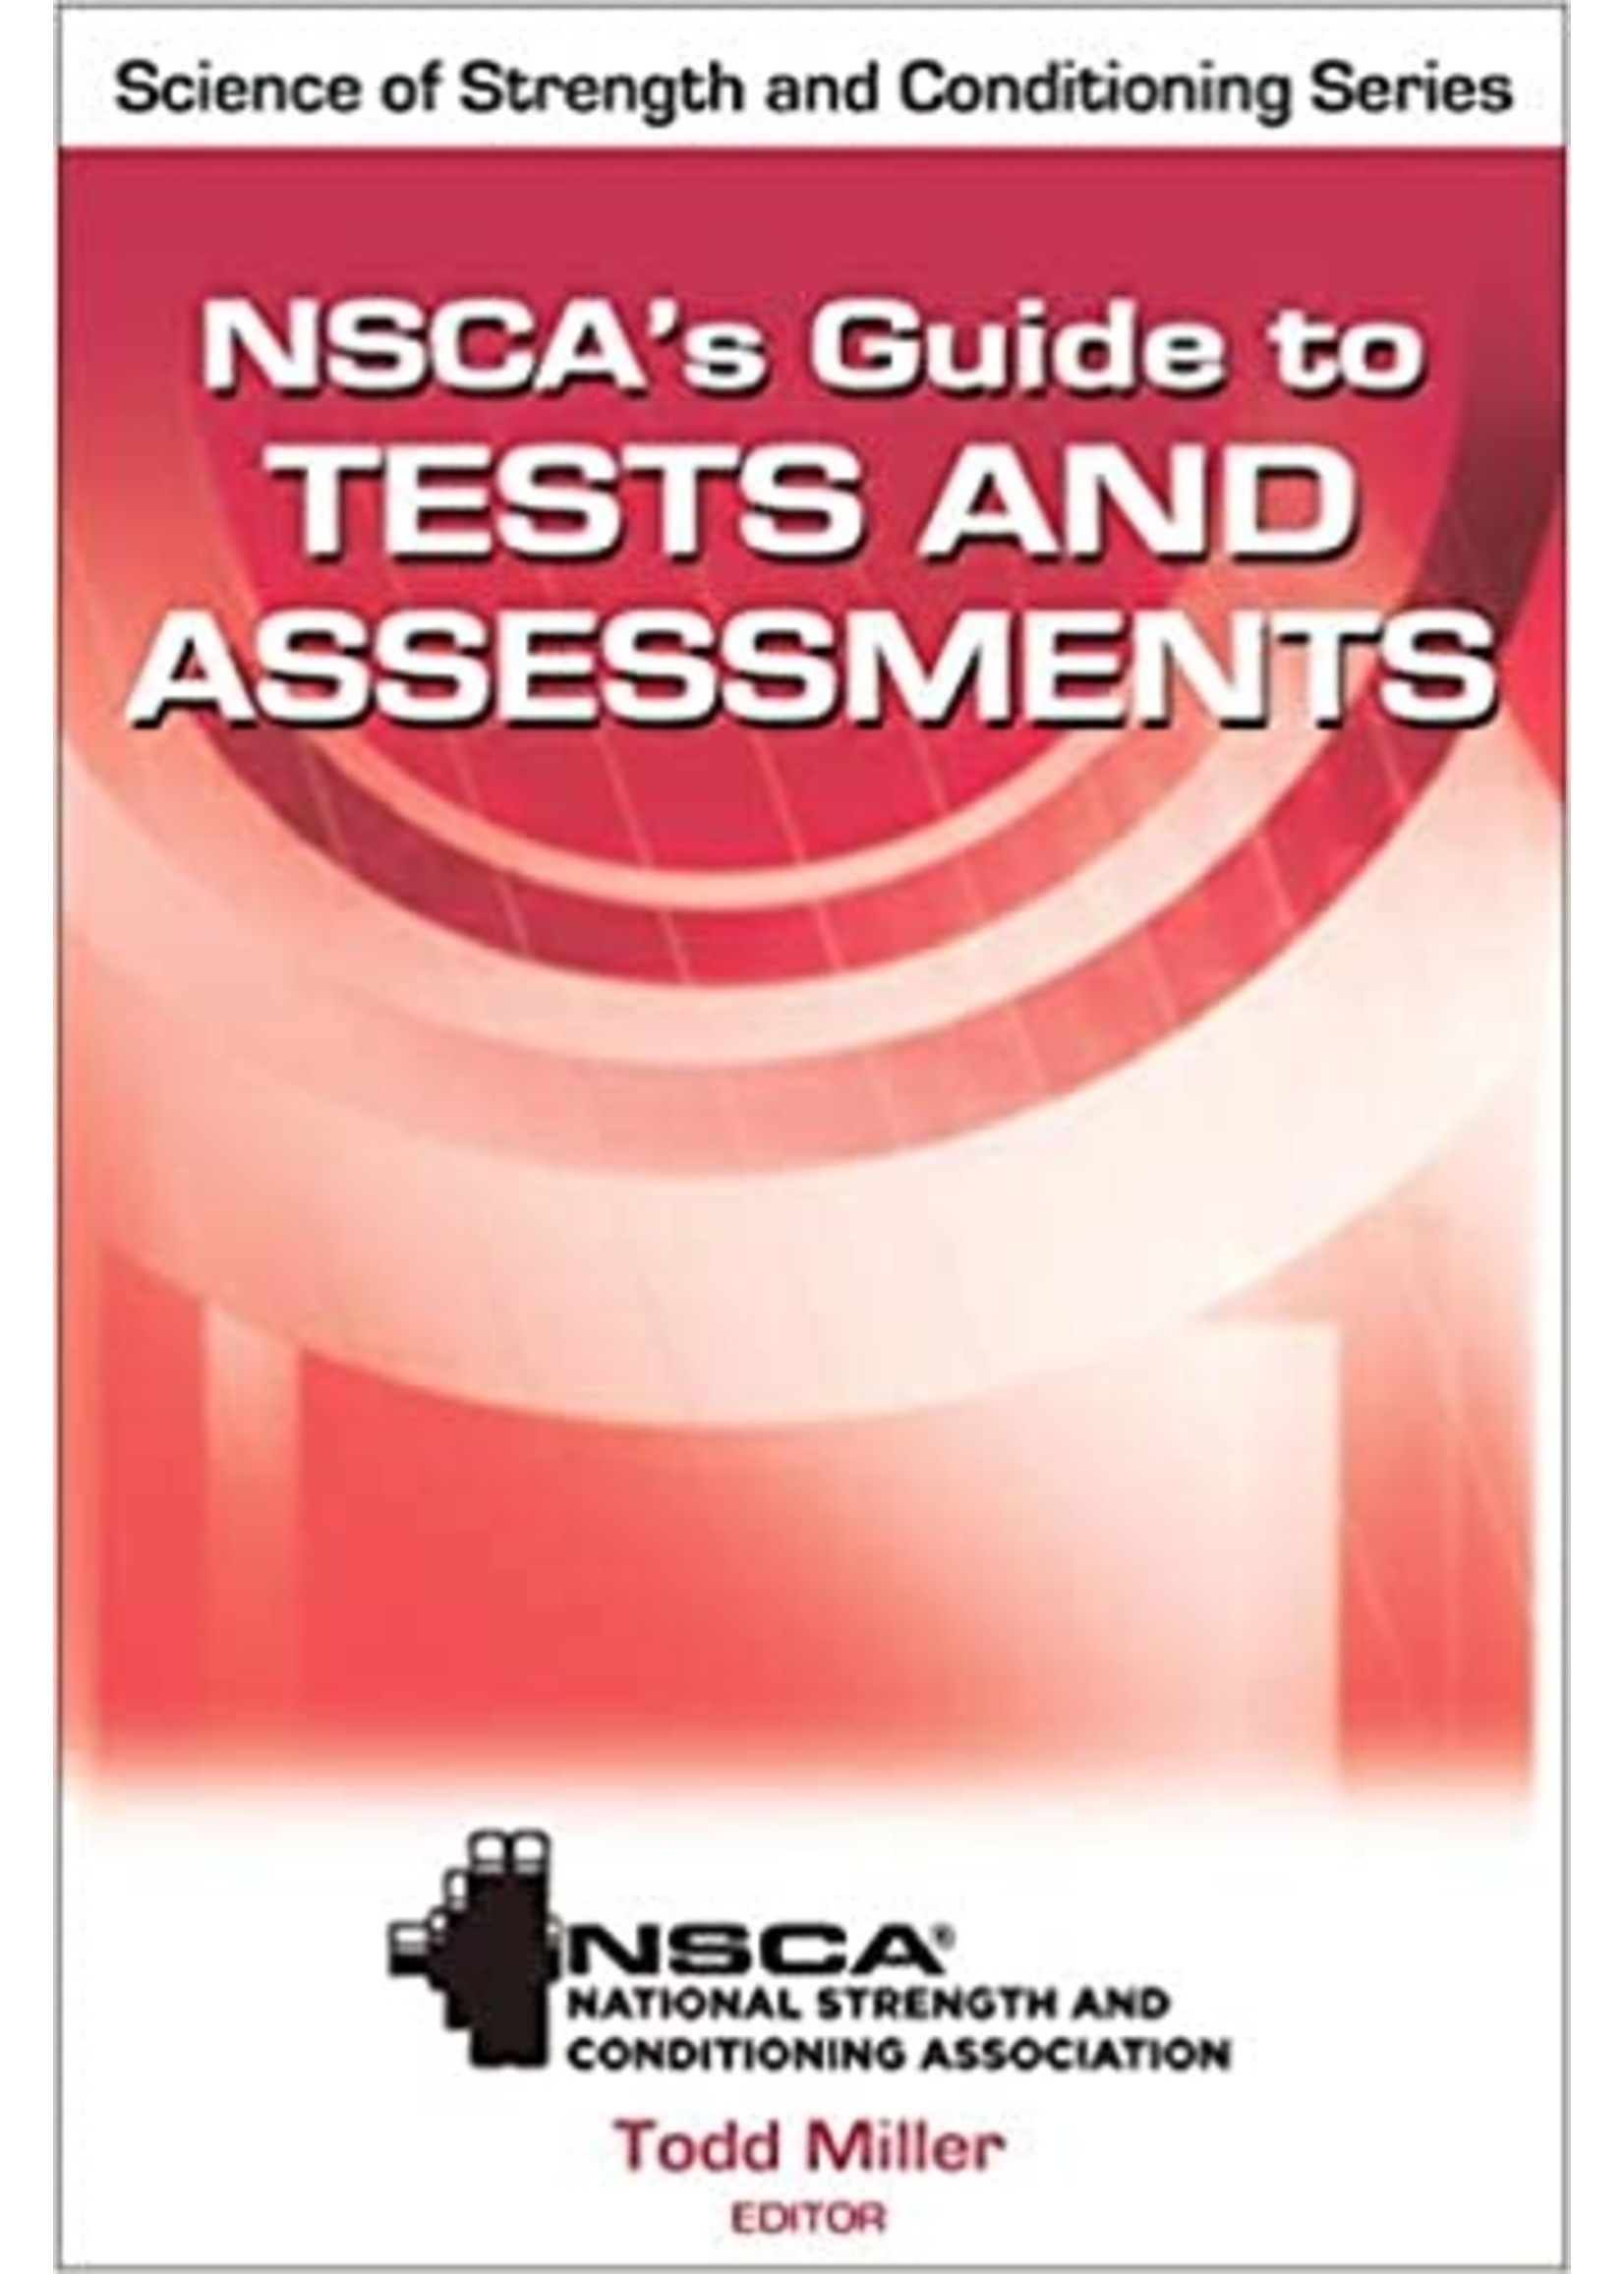 EXNS488 NSCA 'S GUIDE TO TESTS AND ASSESSMENTSS